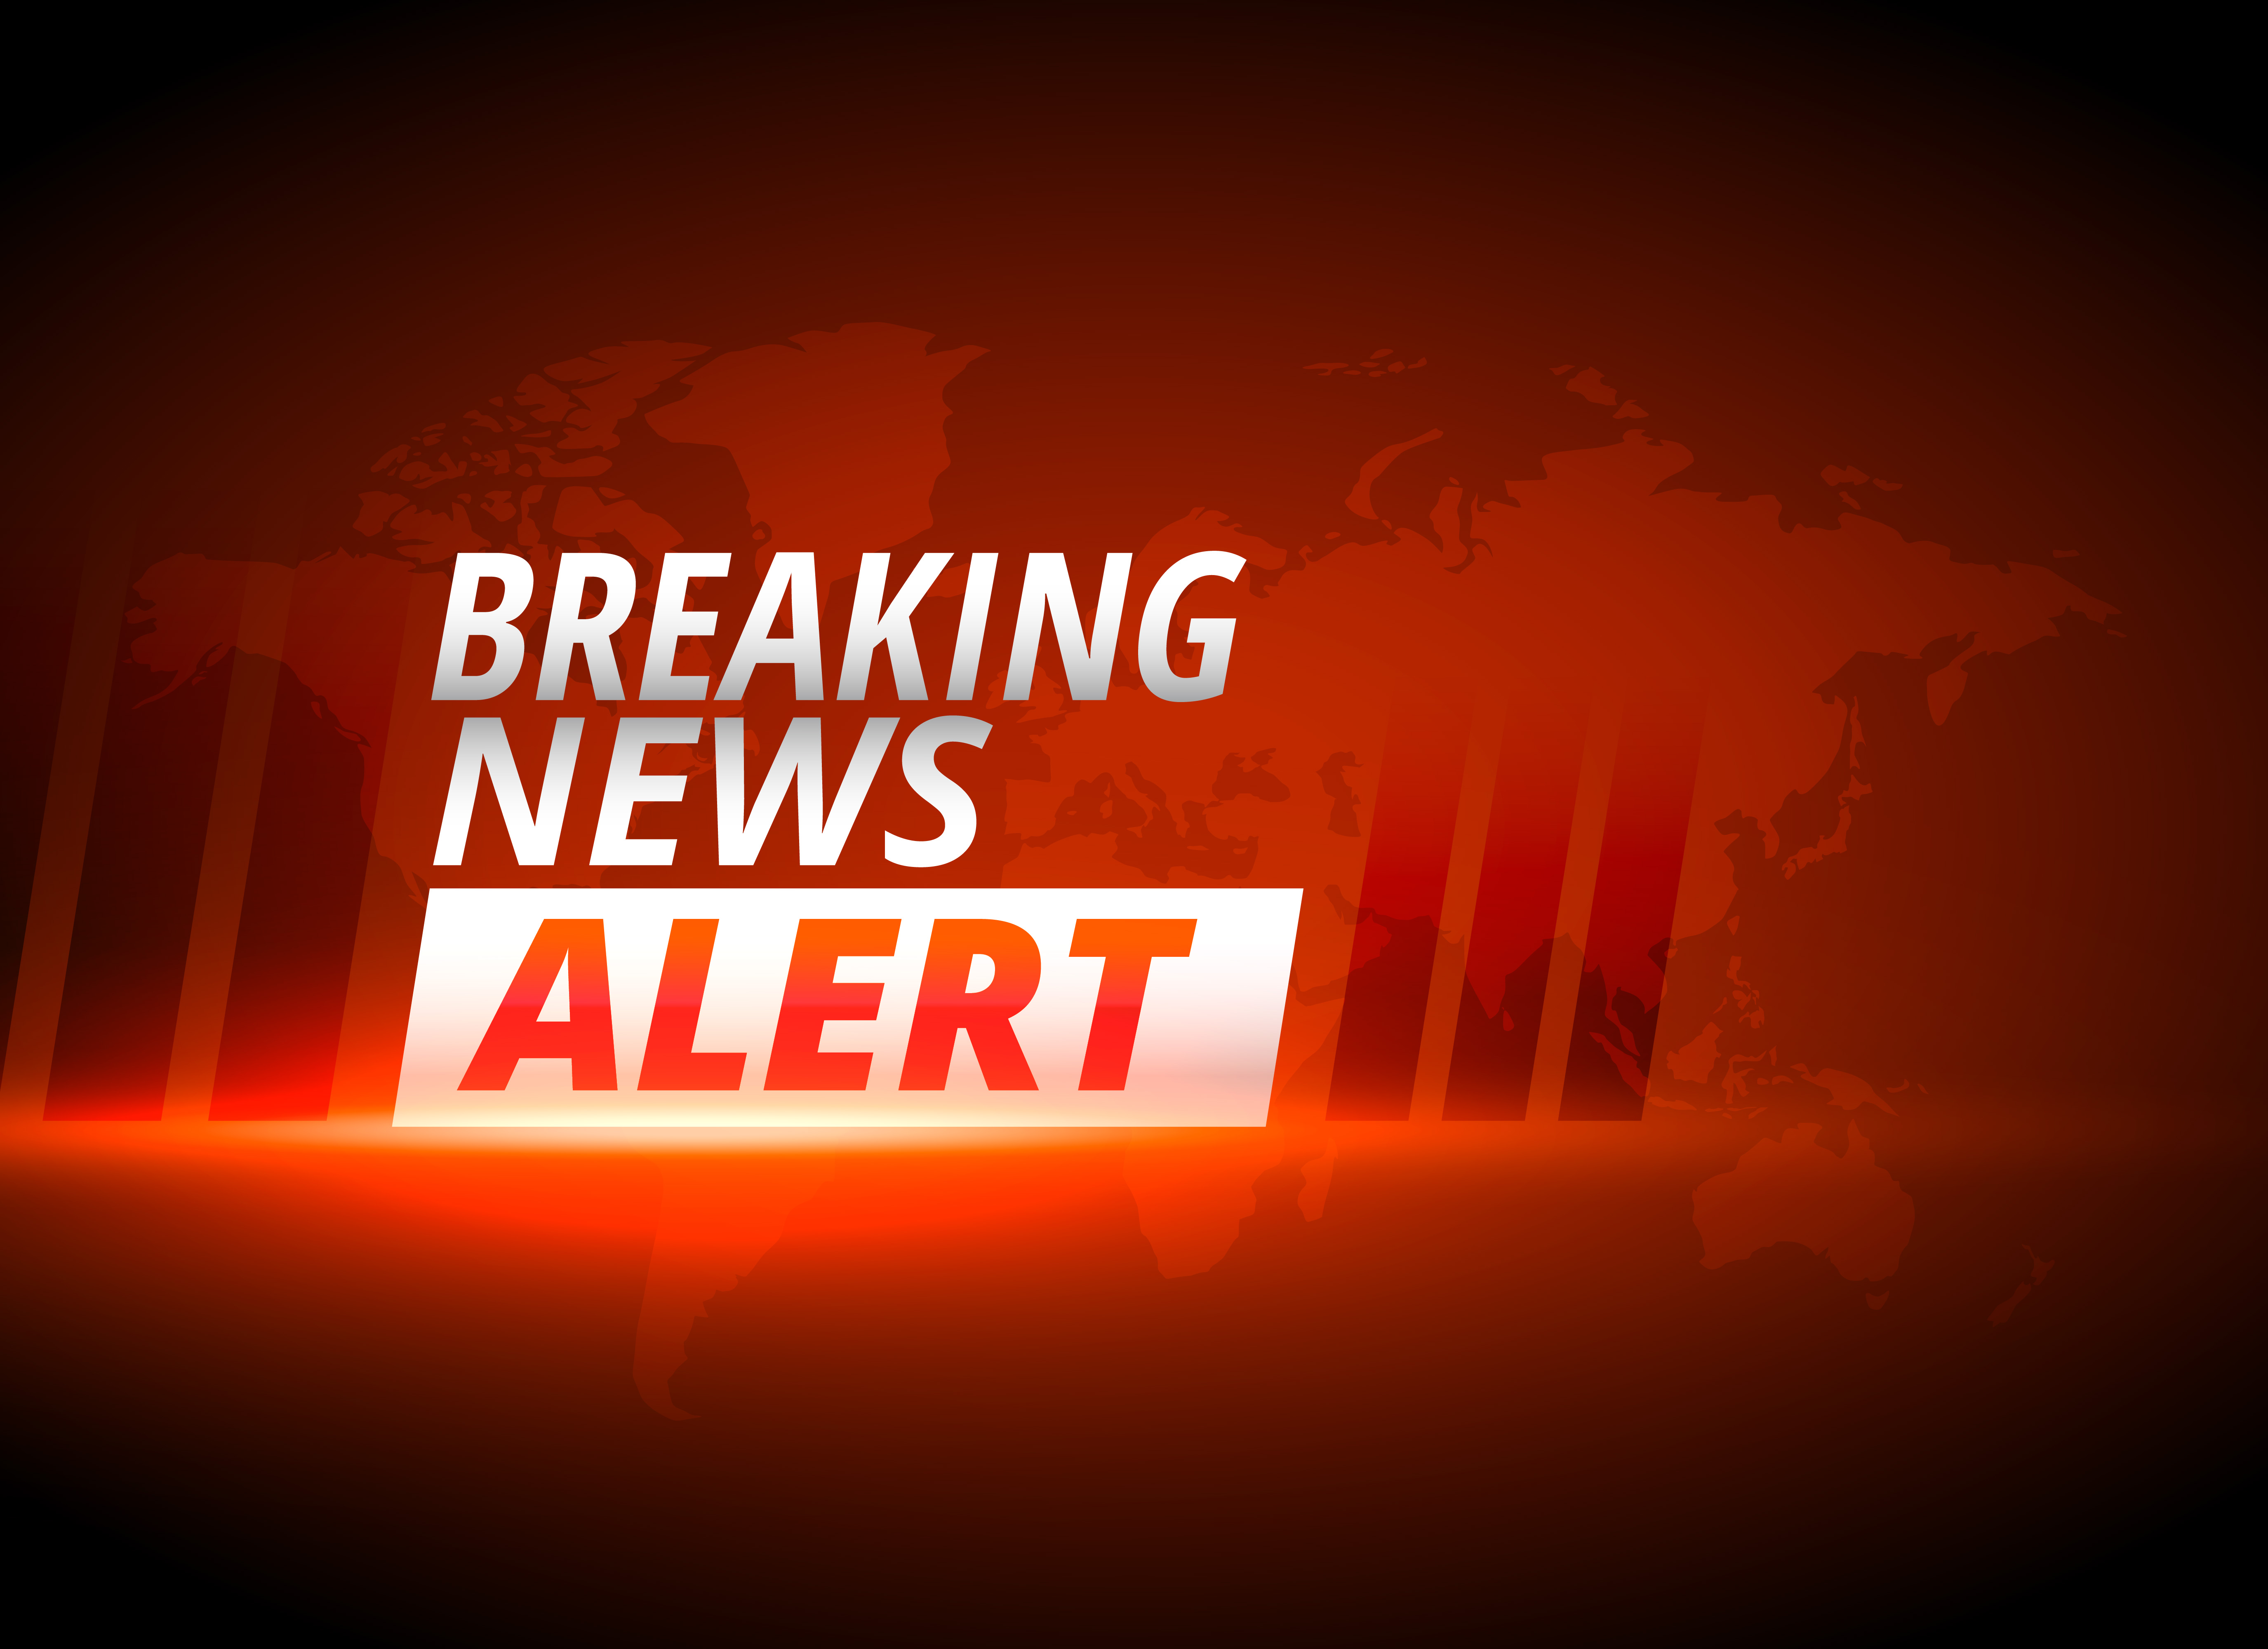 breaking news alert background in red theme - Download ...